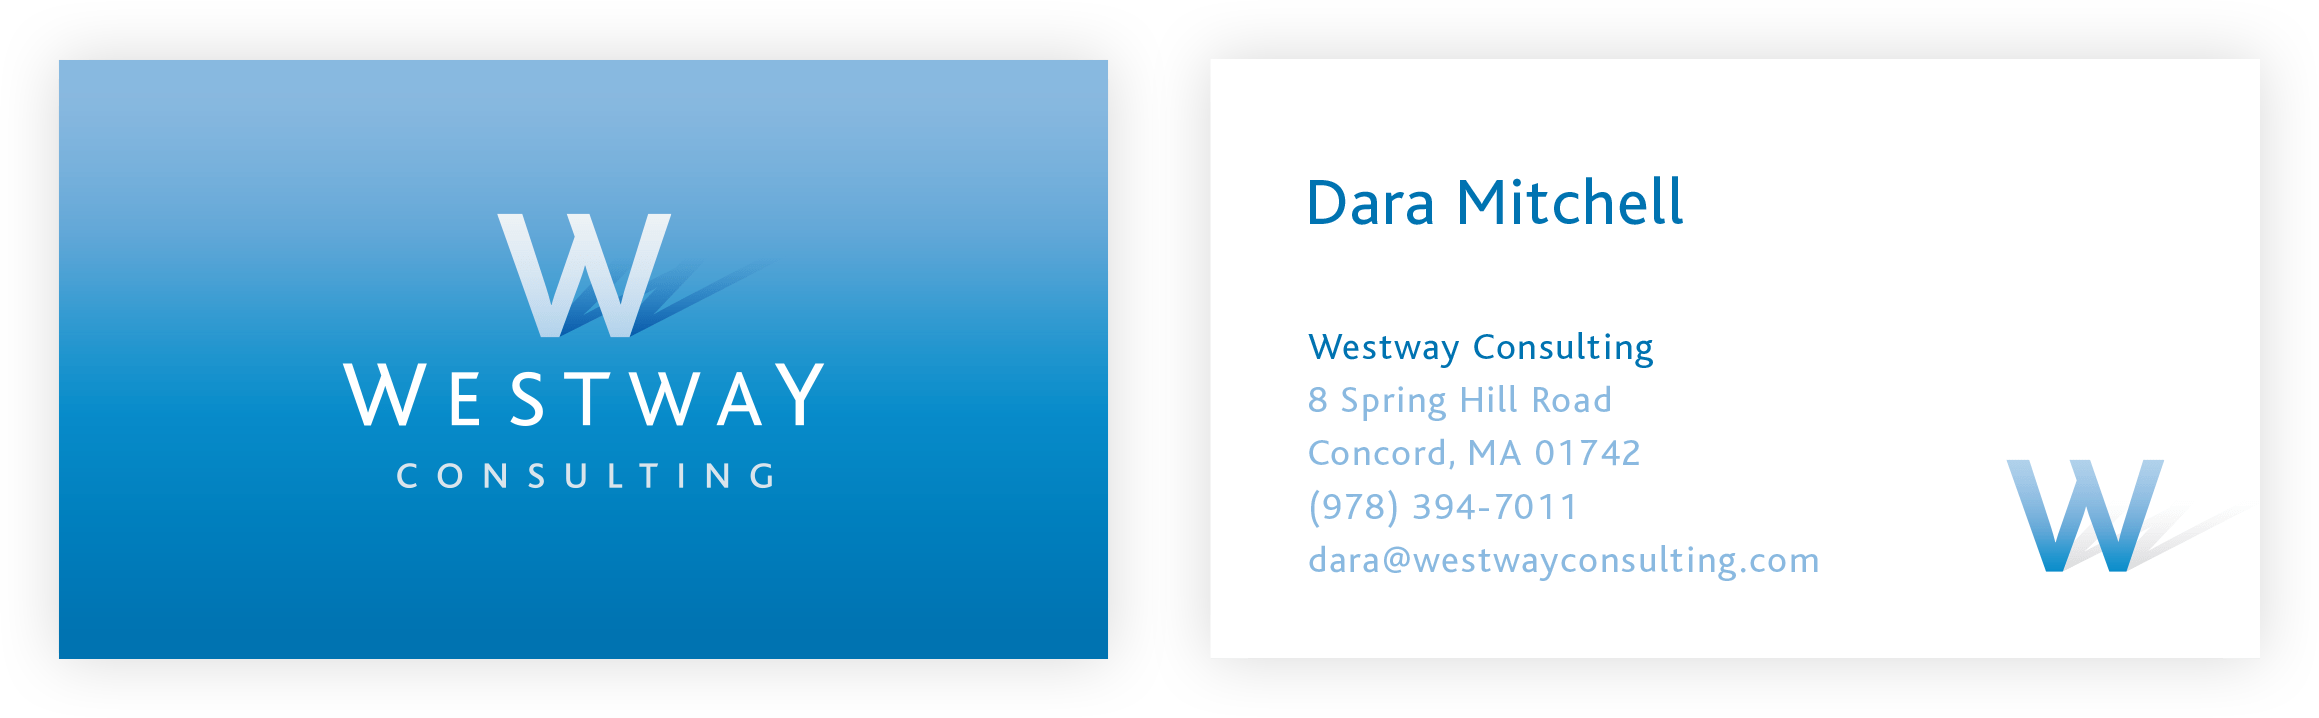 Westway Consulting Business Card